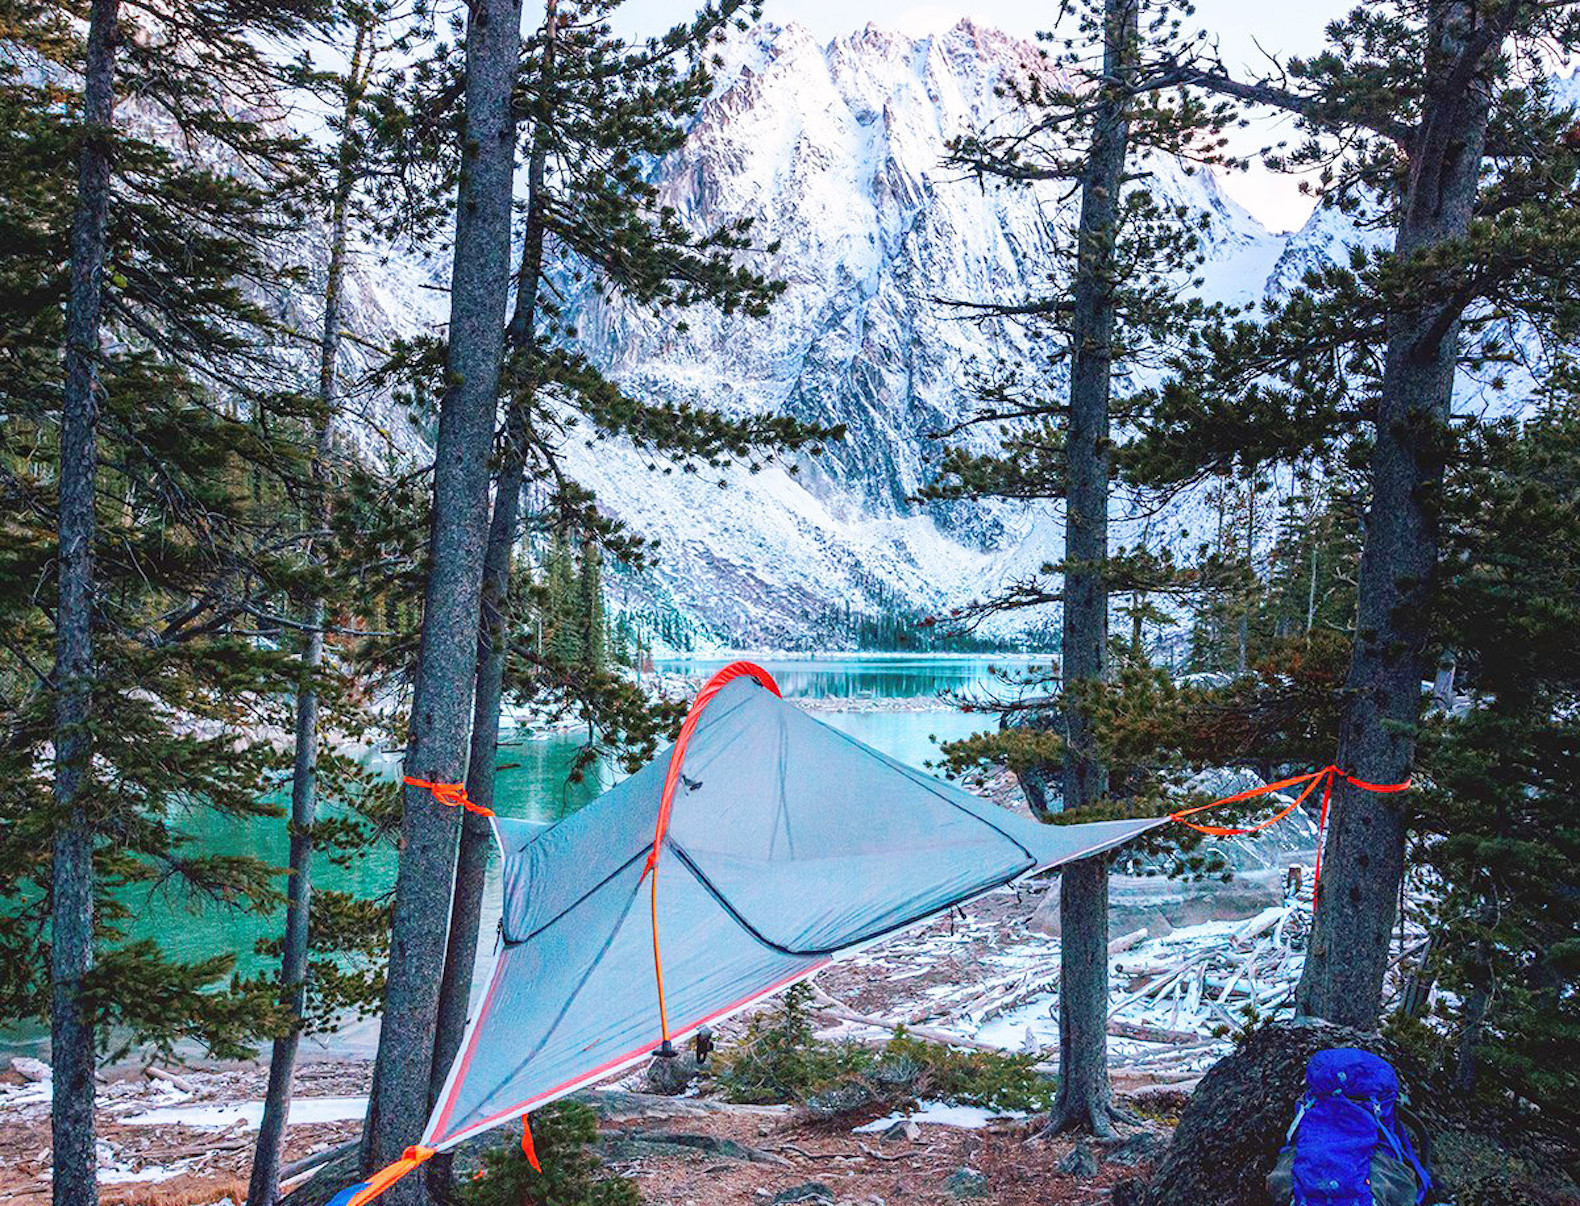 Flite Flite tent Tentsile Flite Tentsile tree tent suspended tent & Ultra-light and portable Flite tent lets you camp in the trees ...